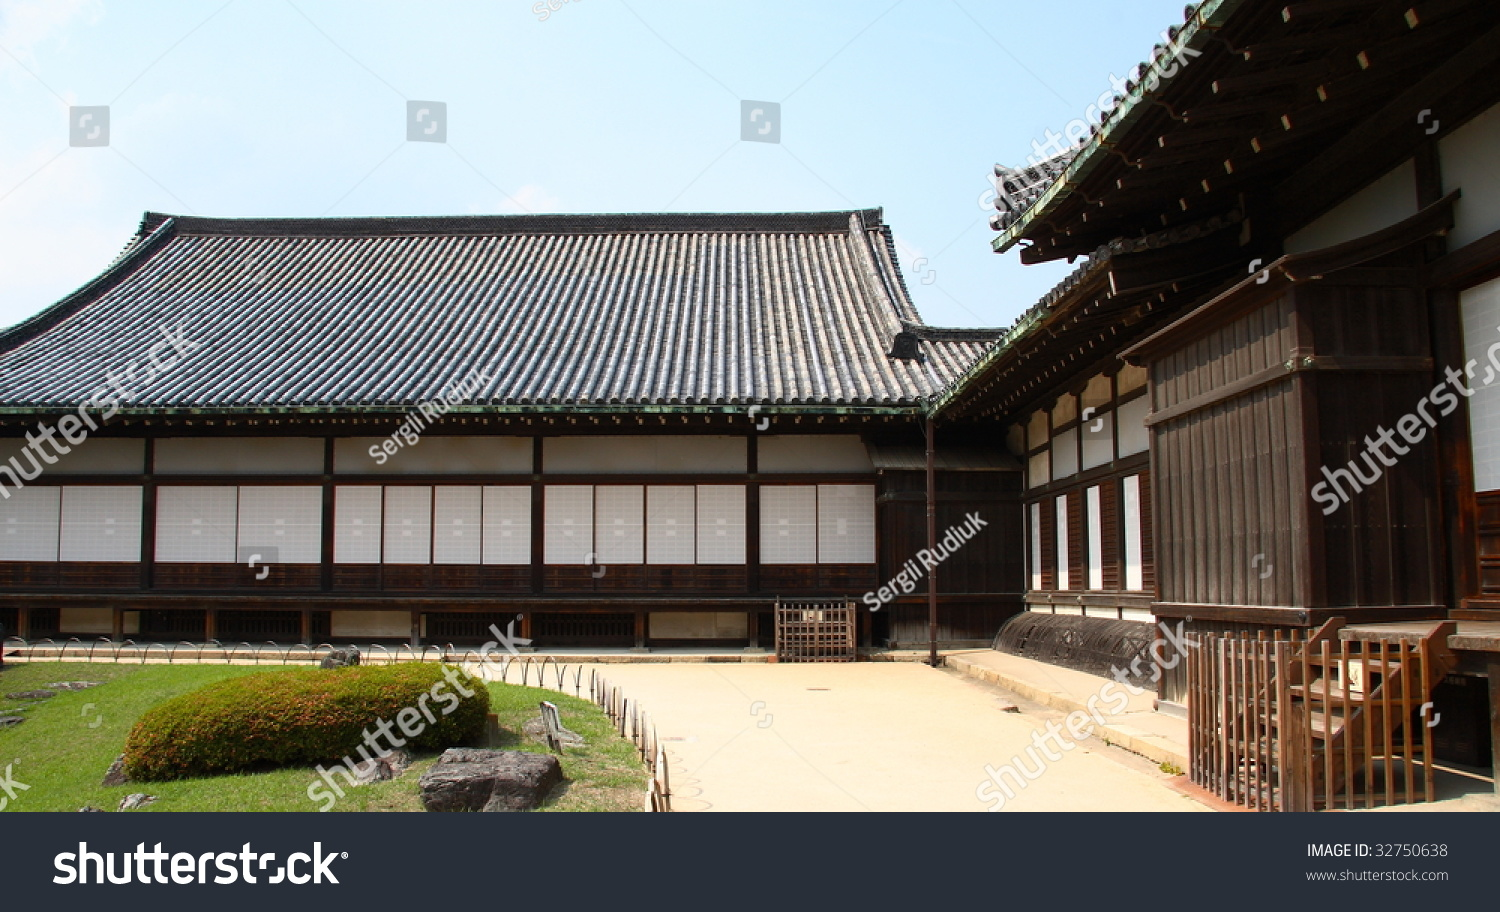 ancient japanese architecture. panorama of ancient japanese architecture (kyoto)